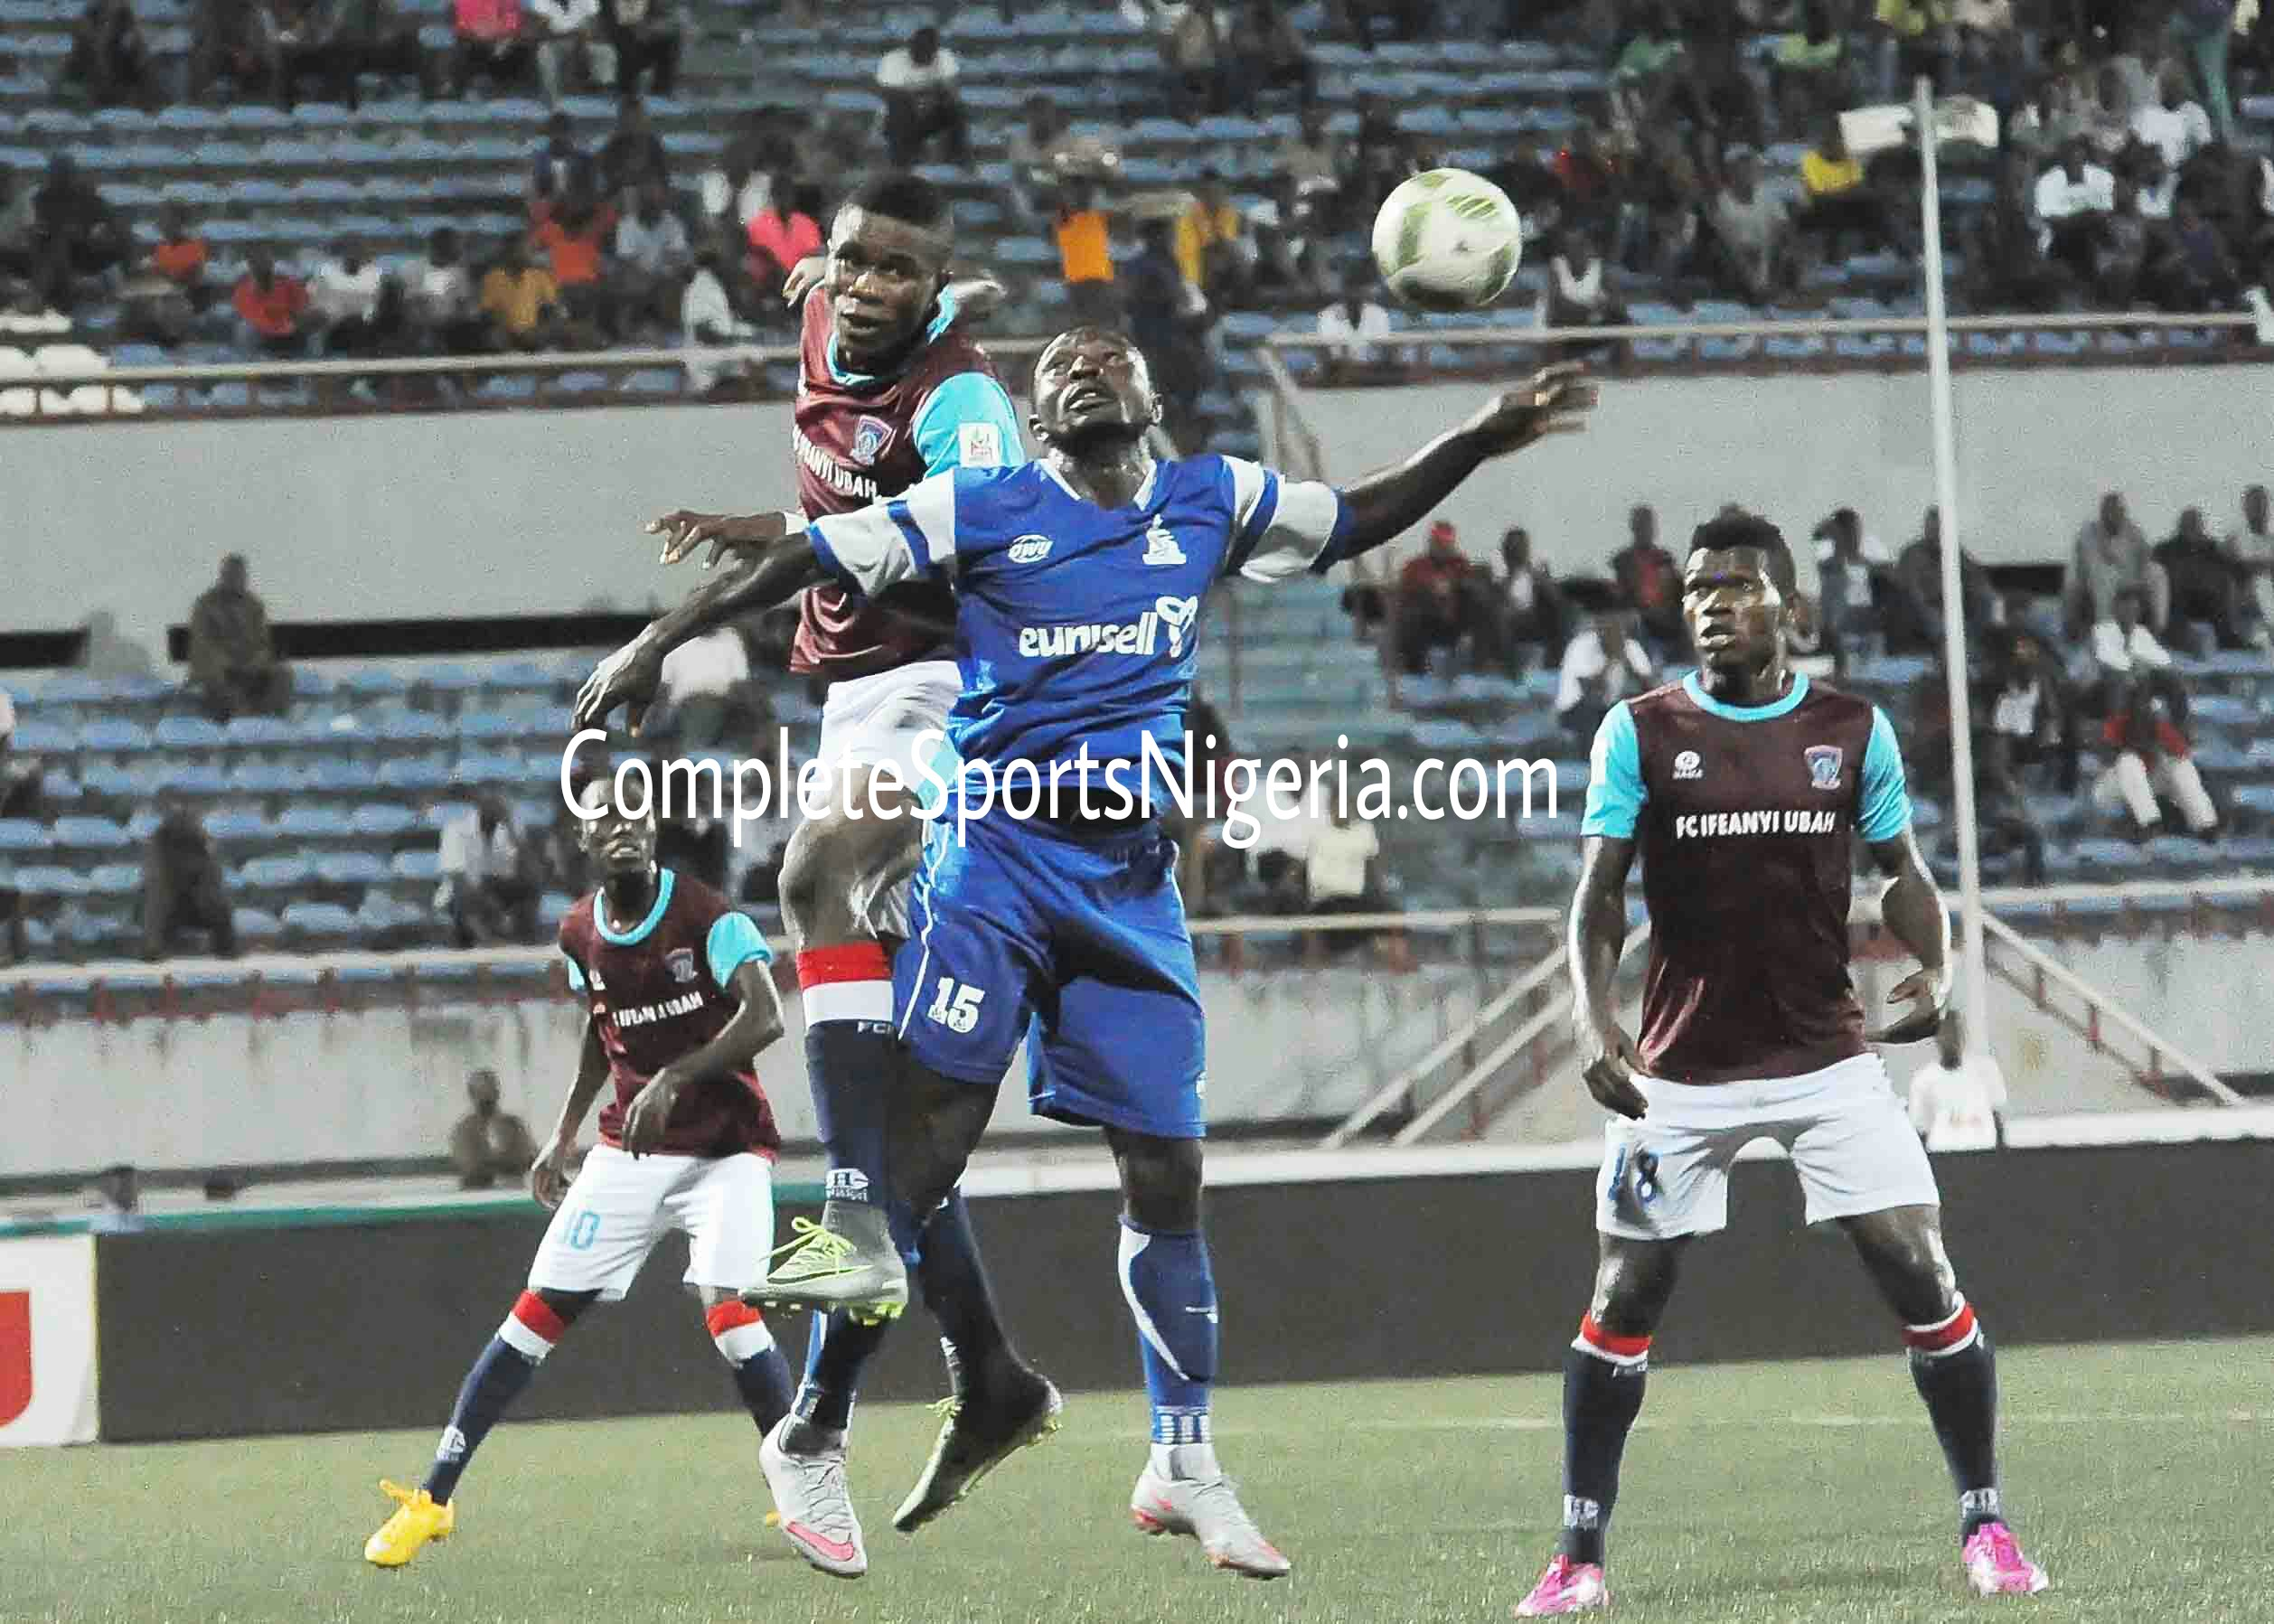 NPFL: Red-Hot IfeanyiUbah Invade Lagos For MFM As Strugglers 3SC Welcome Sunshine